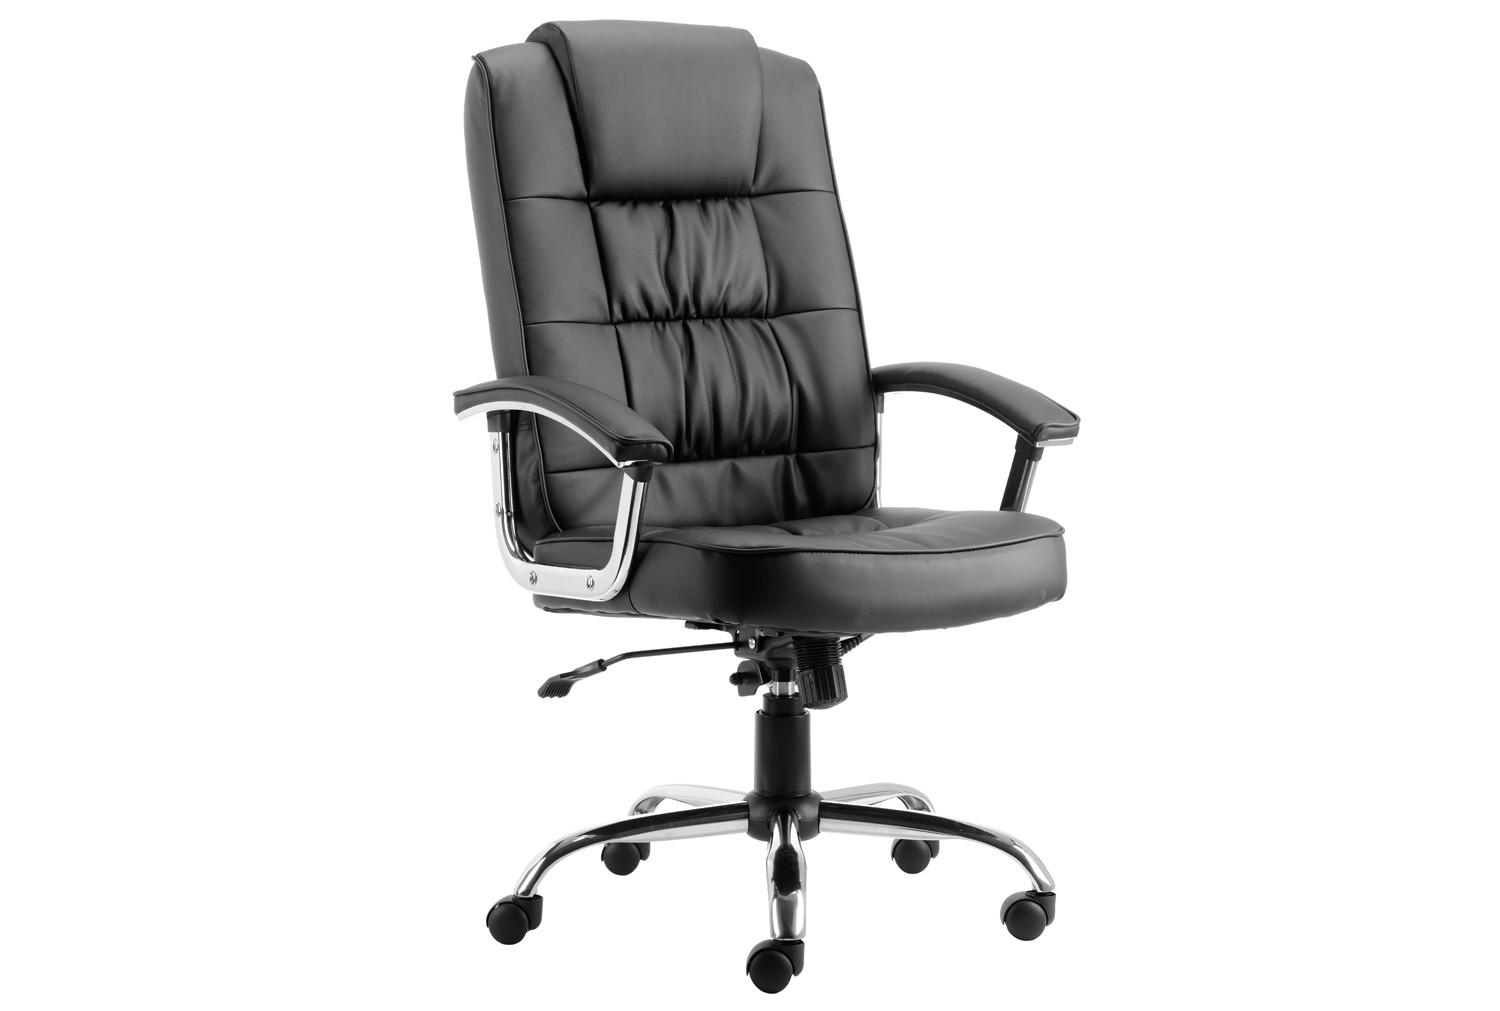 Next-Day Muscat Deluxe Executive Leather Chair